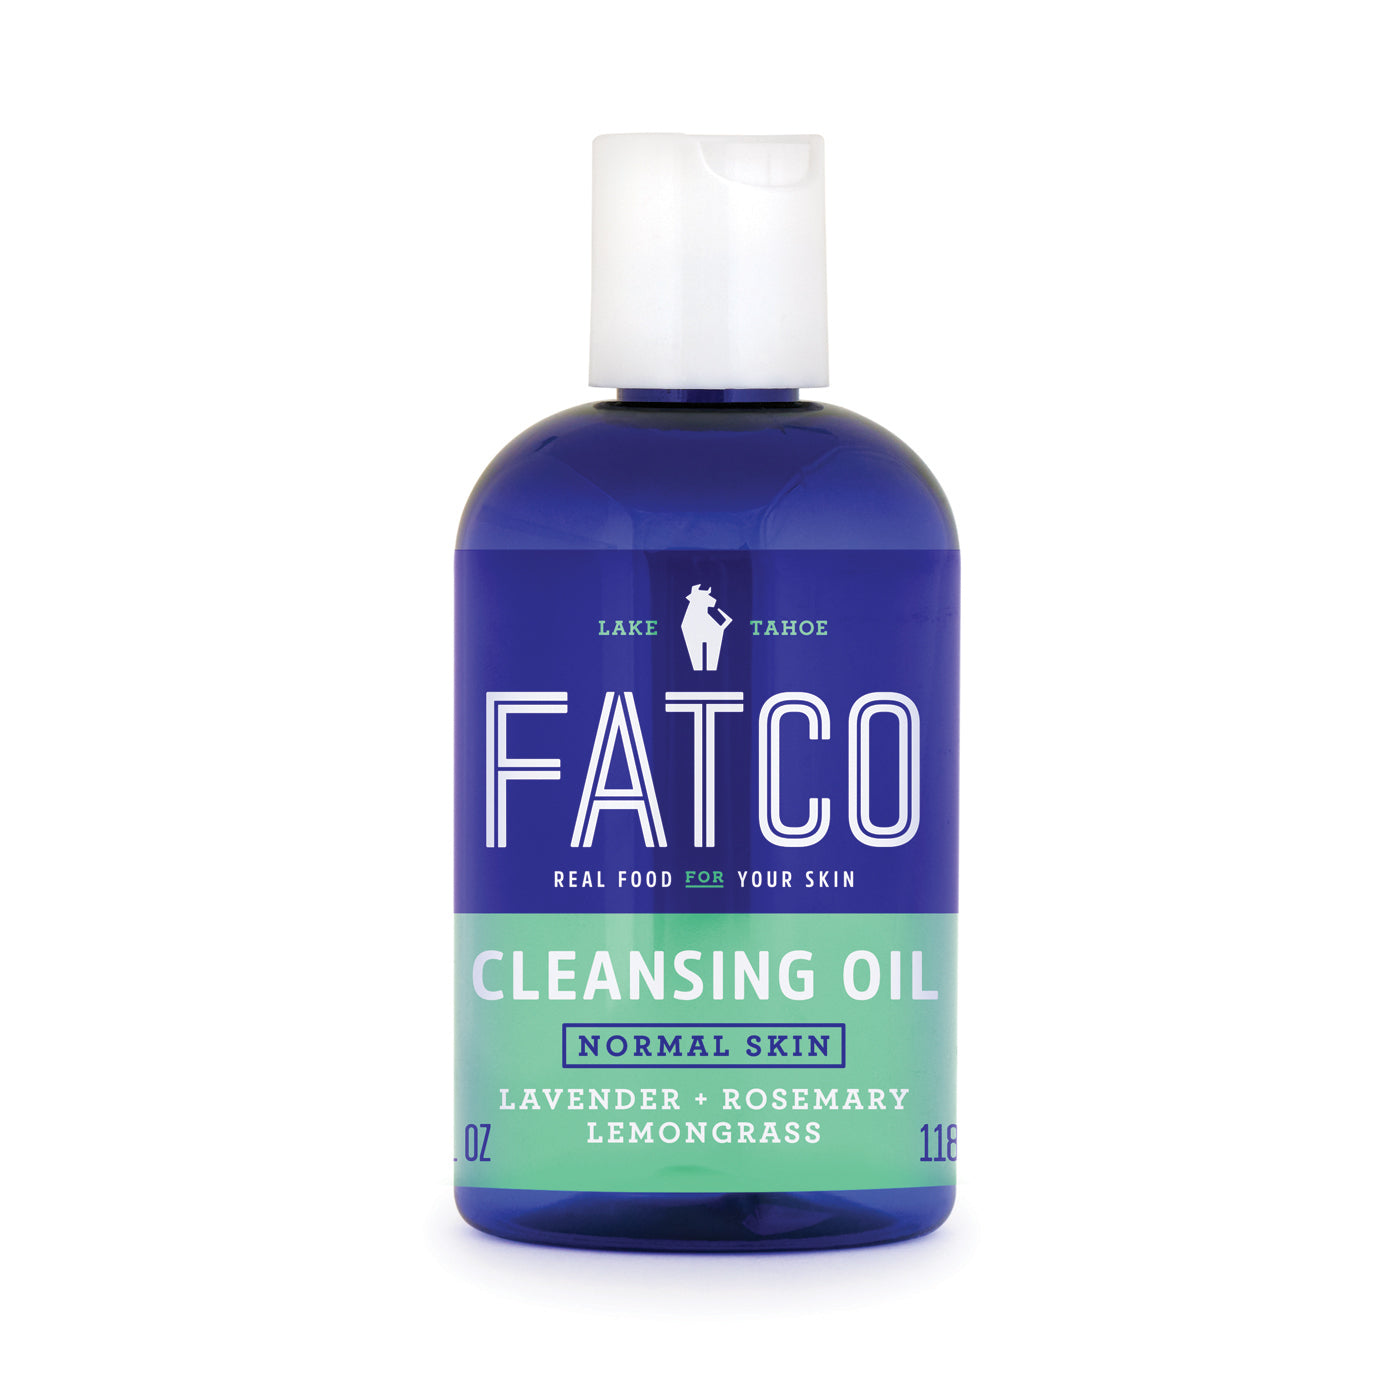 FATCO Cleansing Oil for Normal Skin 4 oz bottle front view